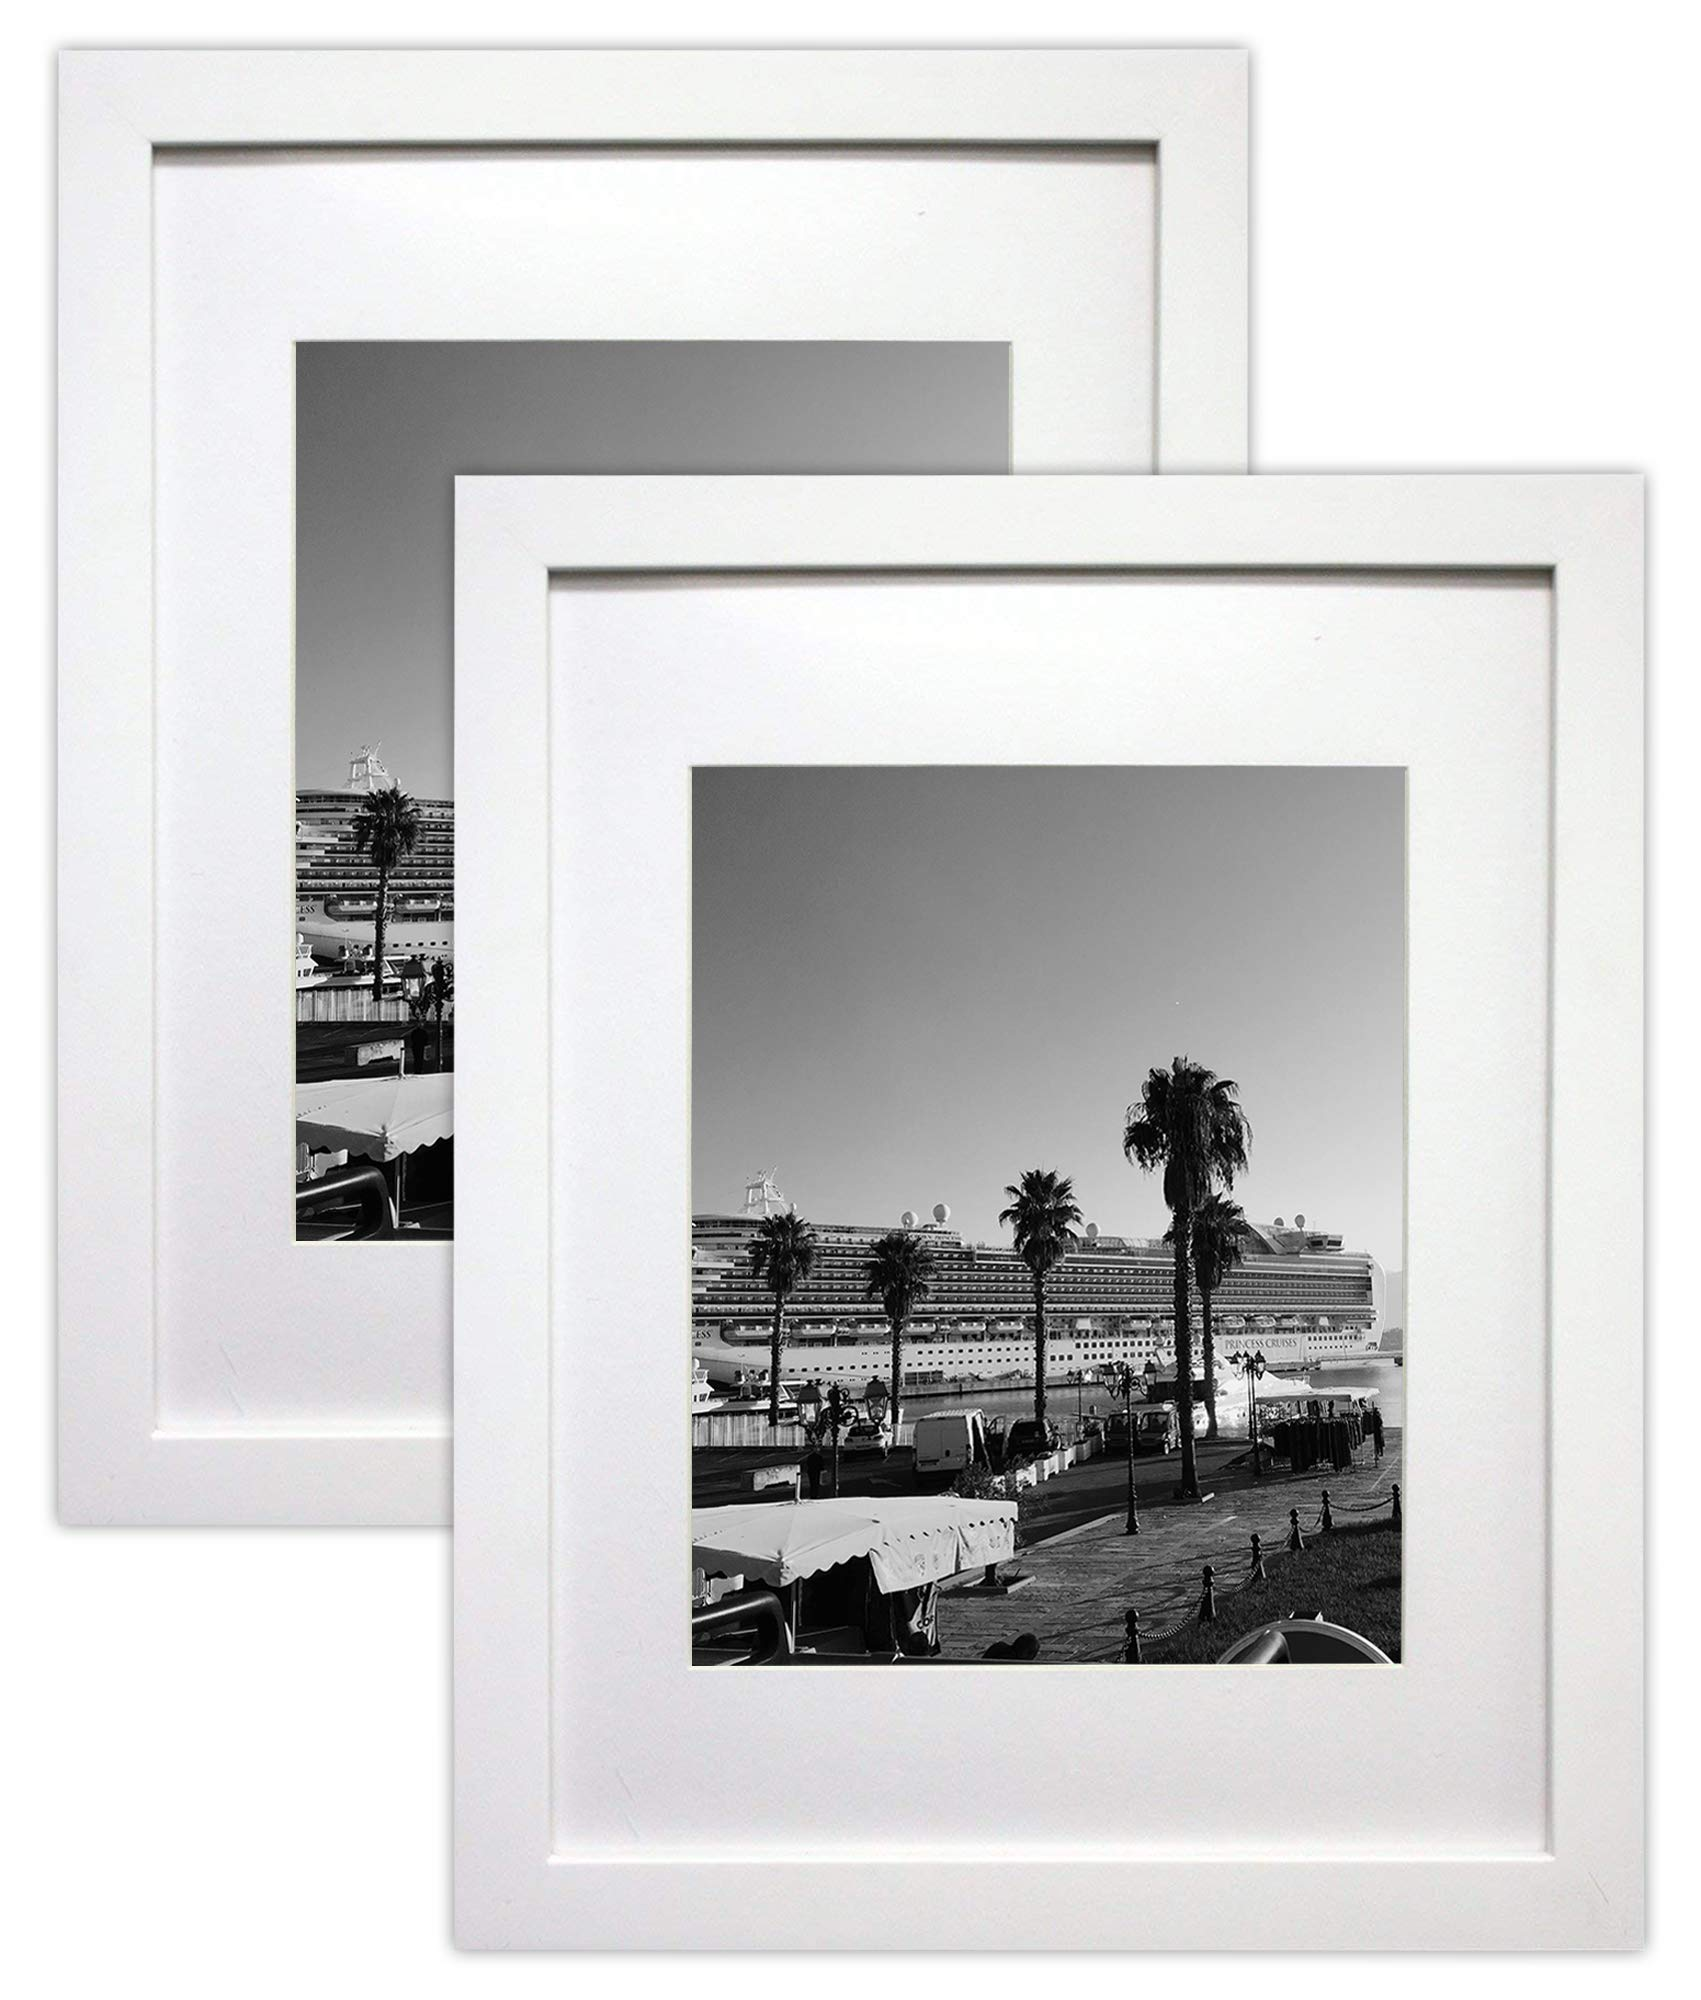 Golden State Art Set of 2, 11x14 White Picture Frame - Matted for 8x10 Photos - Wood Framing - Wall Mounting - Landscape/Portrait - Great for Family/Group Photos by Golden State Art